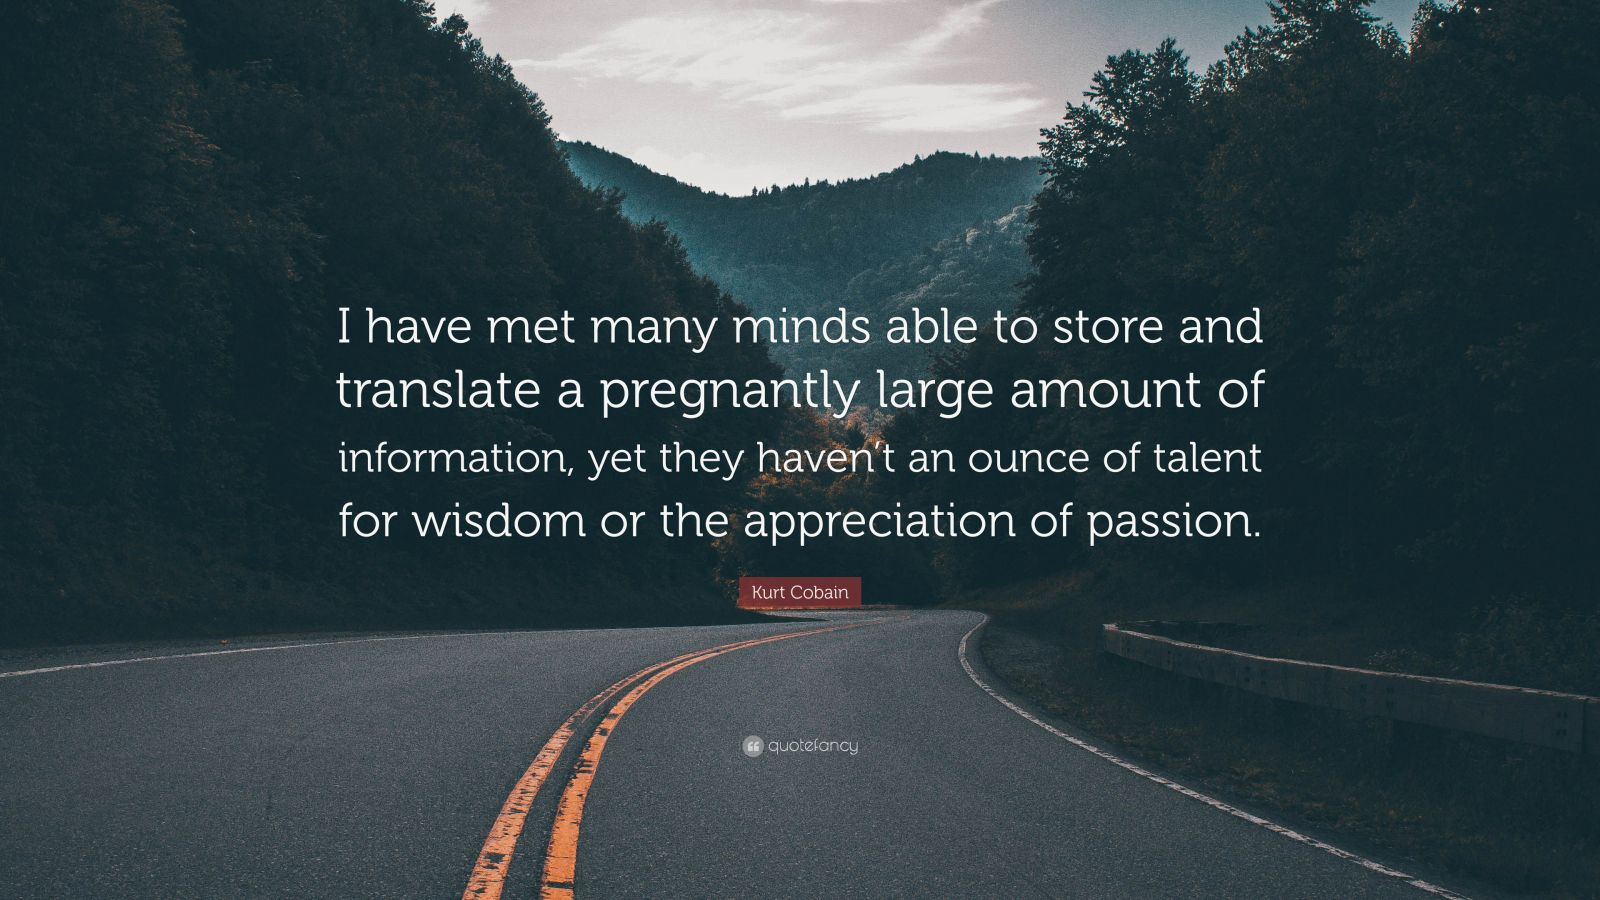 "Kurt Cobain Quote: ""I have met many minds able to store and translate a pregnantly large amount of information, yet they haven't an ounce of talent for wisdom or the appreciation of passion."""